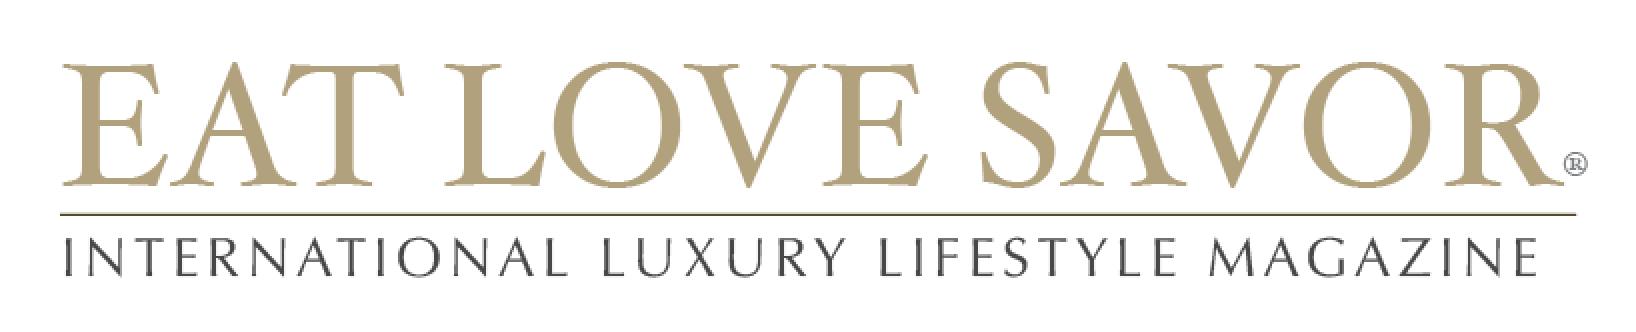 EAT LOVE SAVOR International Luxury Lifestyle Magazine